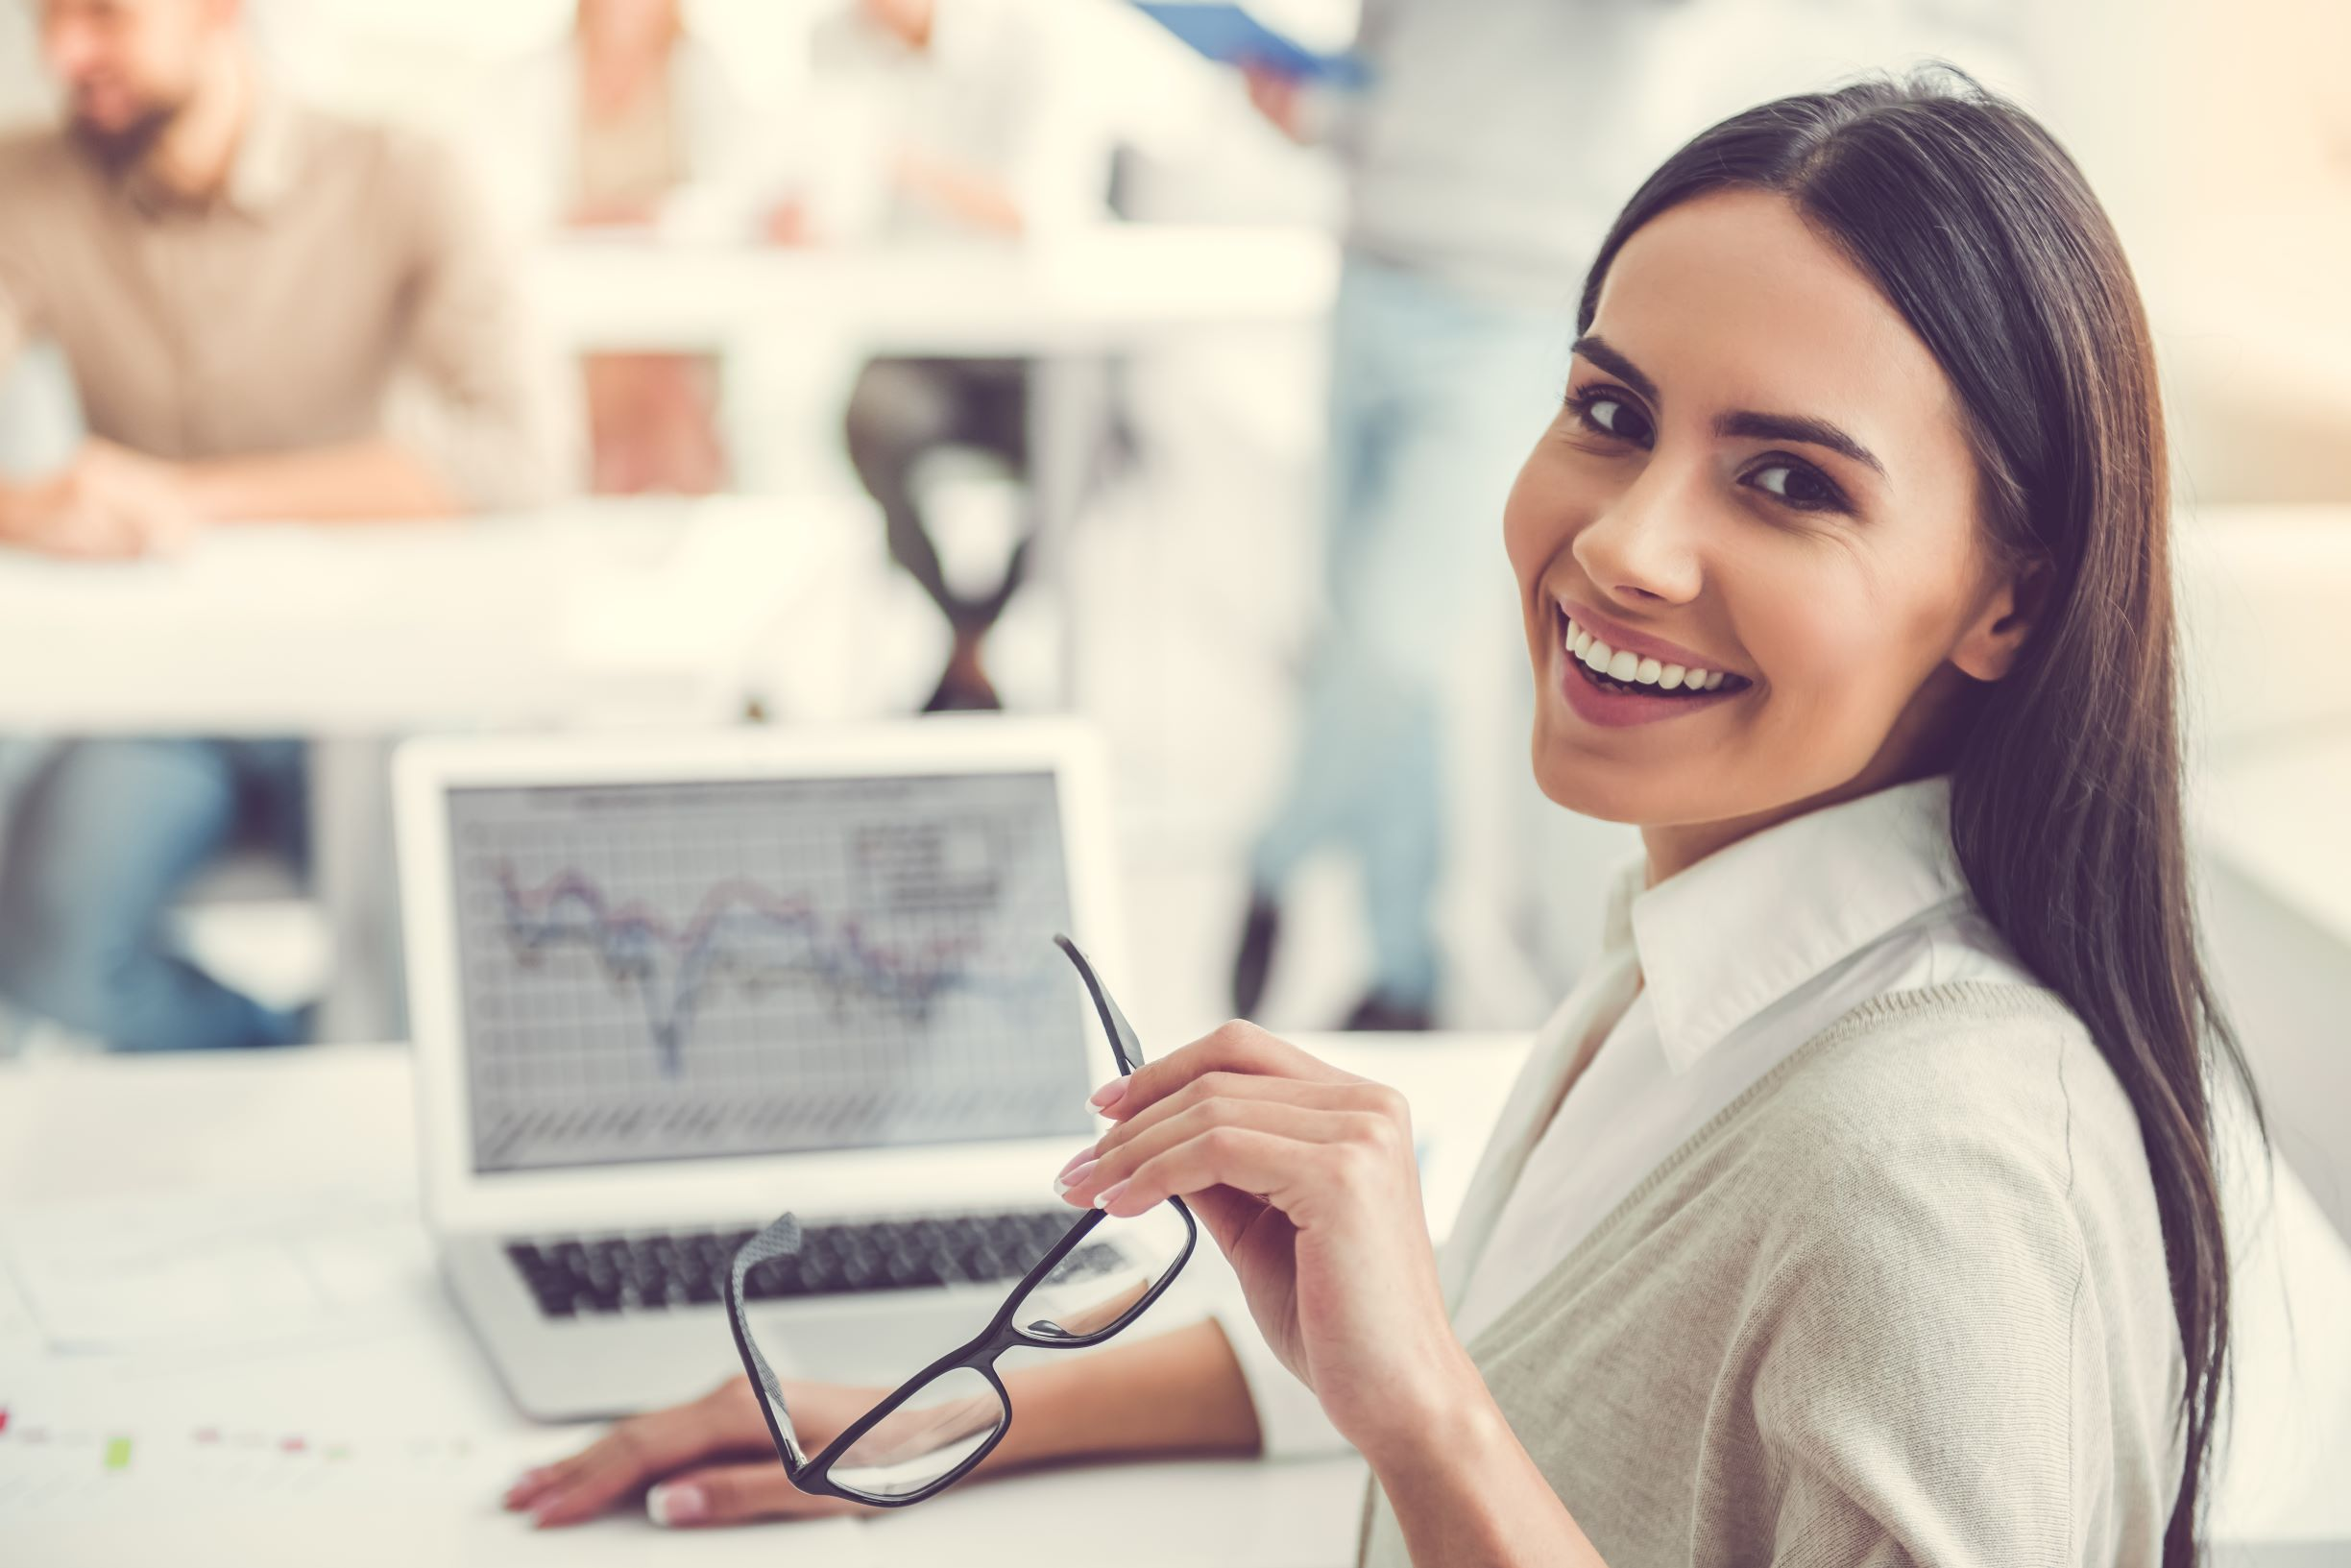 Smiling female employee working on laptop